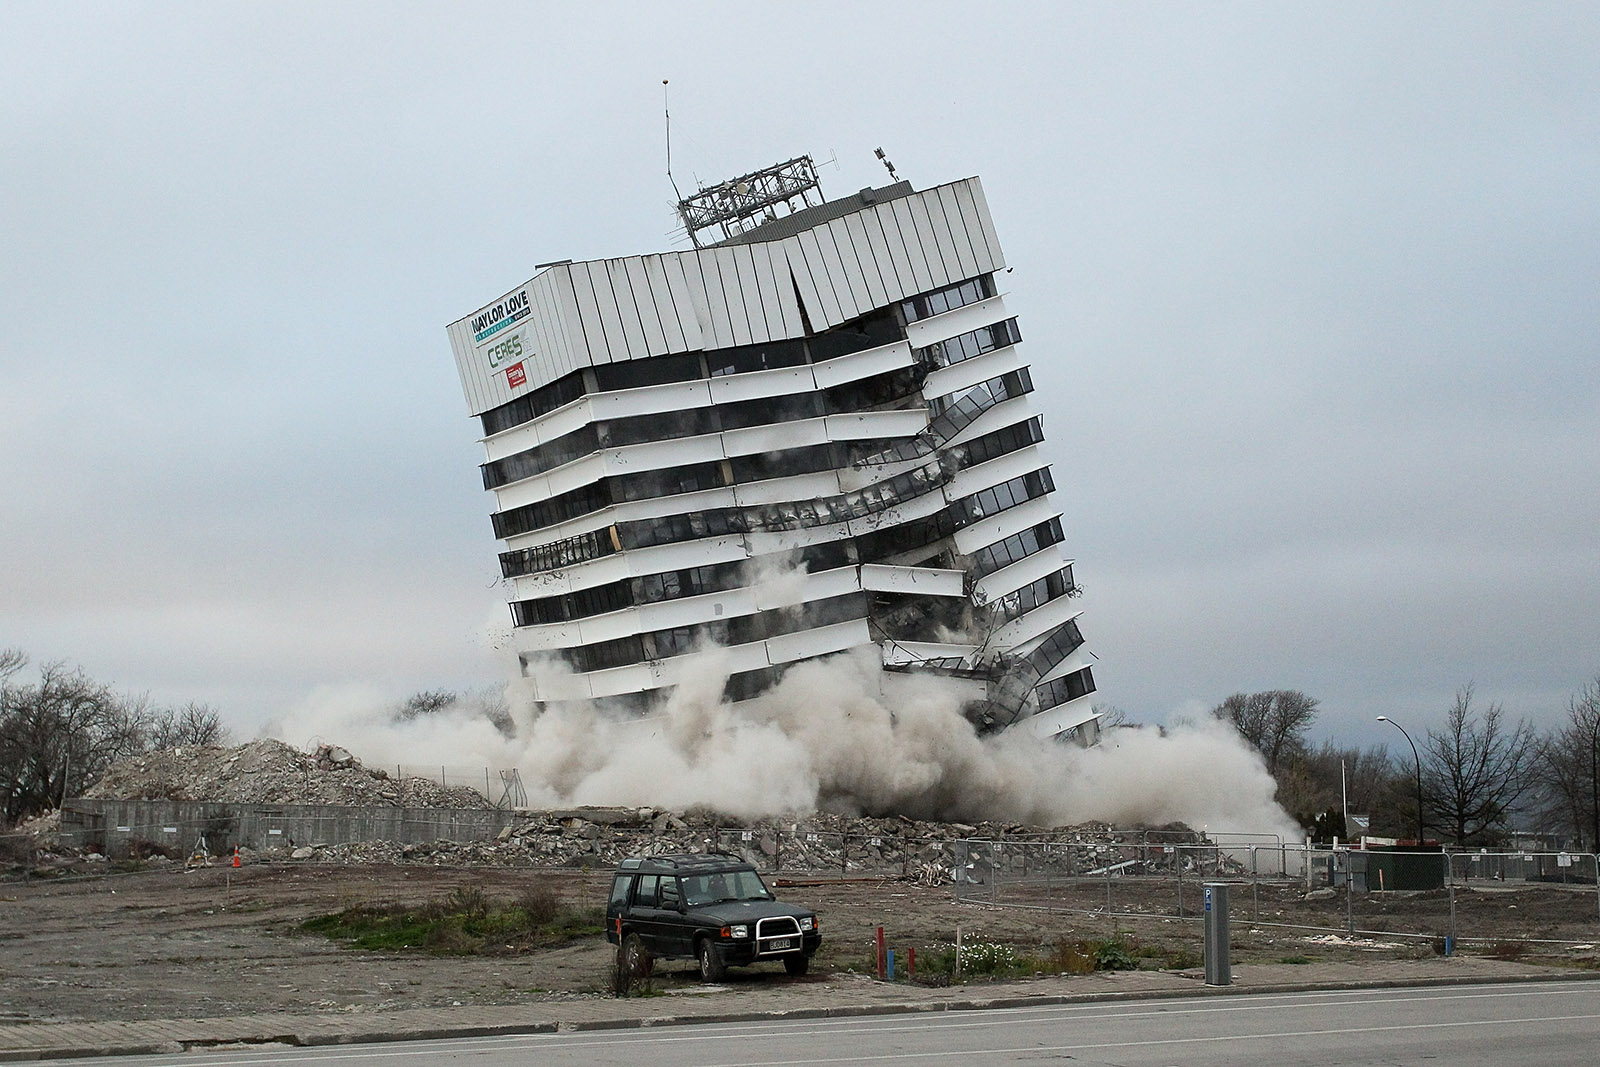 Earthquake Damaged Building Blown Up